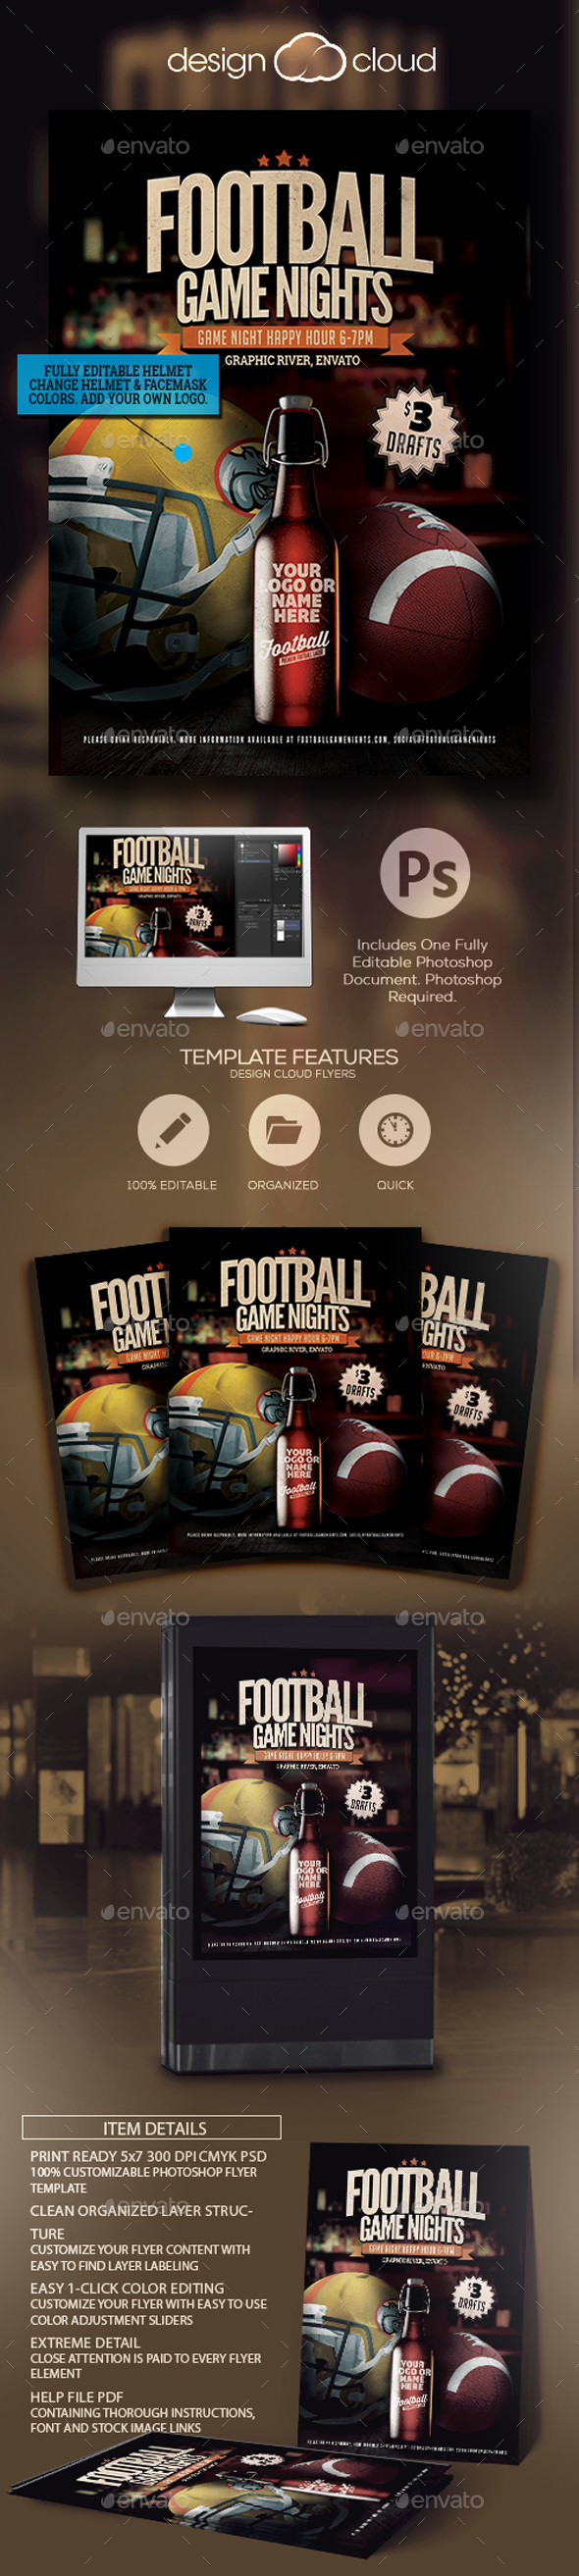 Football Game Night Promo Flyer - Sports Events